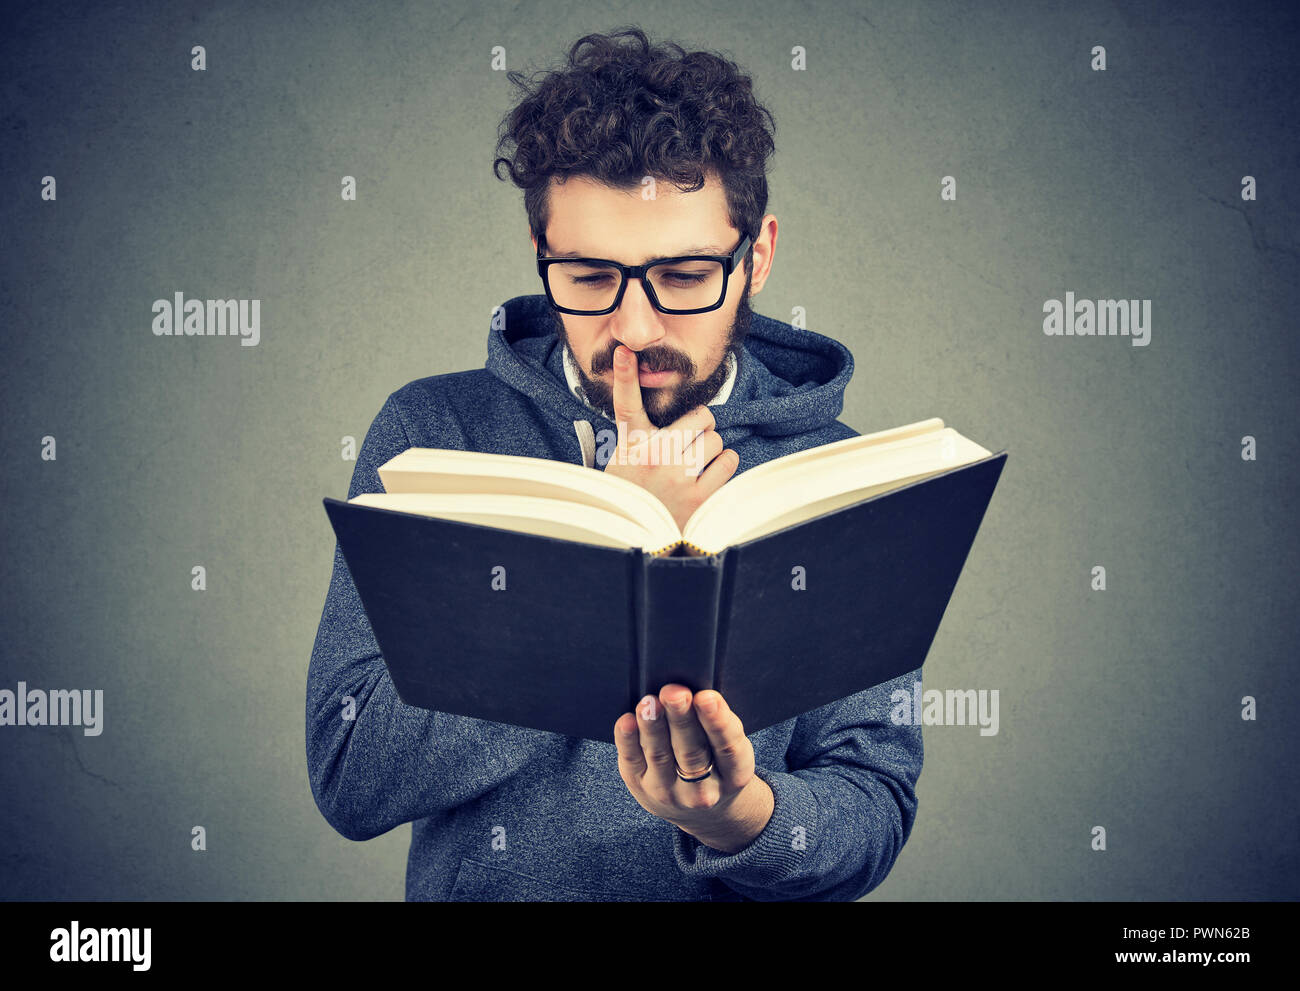 Young man in glasses looking confused while trying to read smart book on gray background - Stock Image